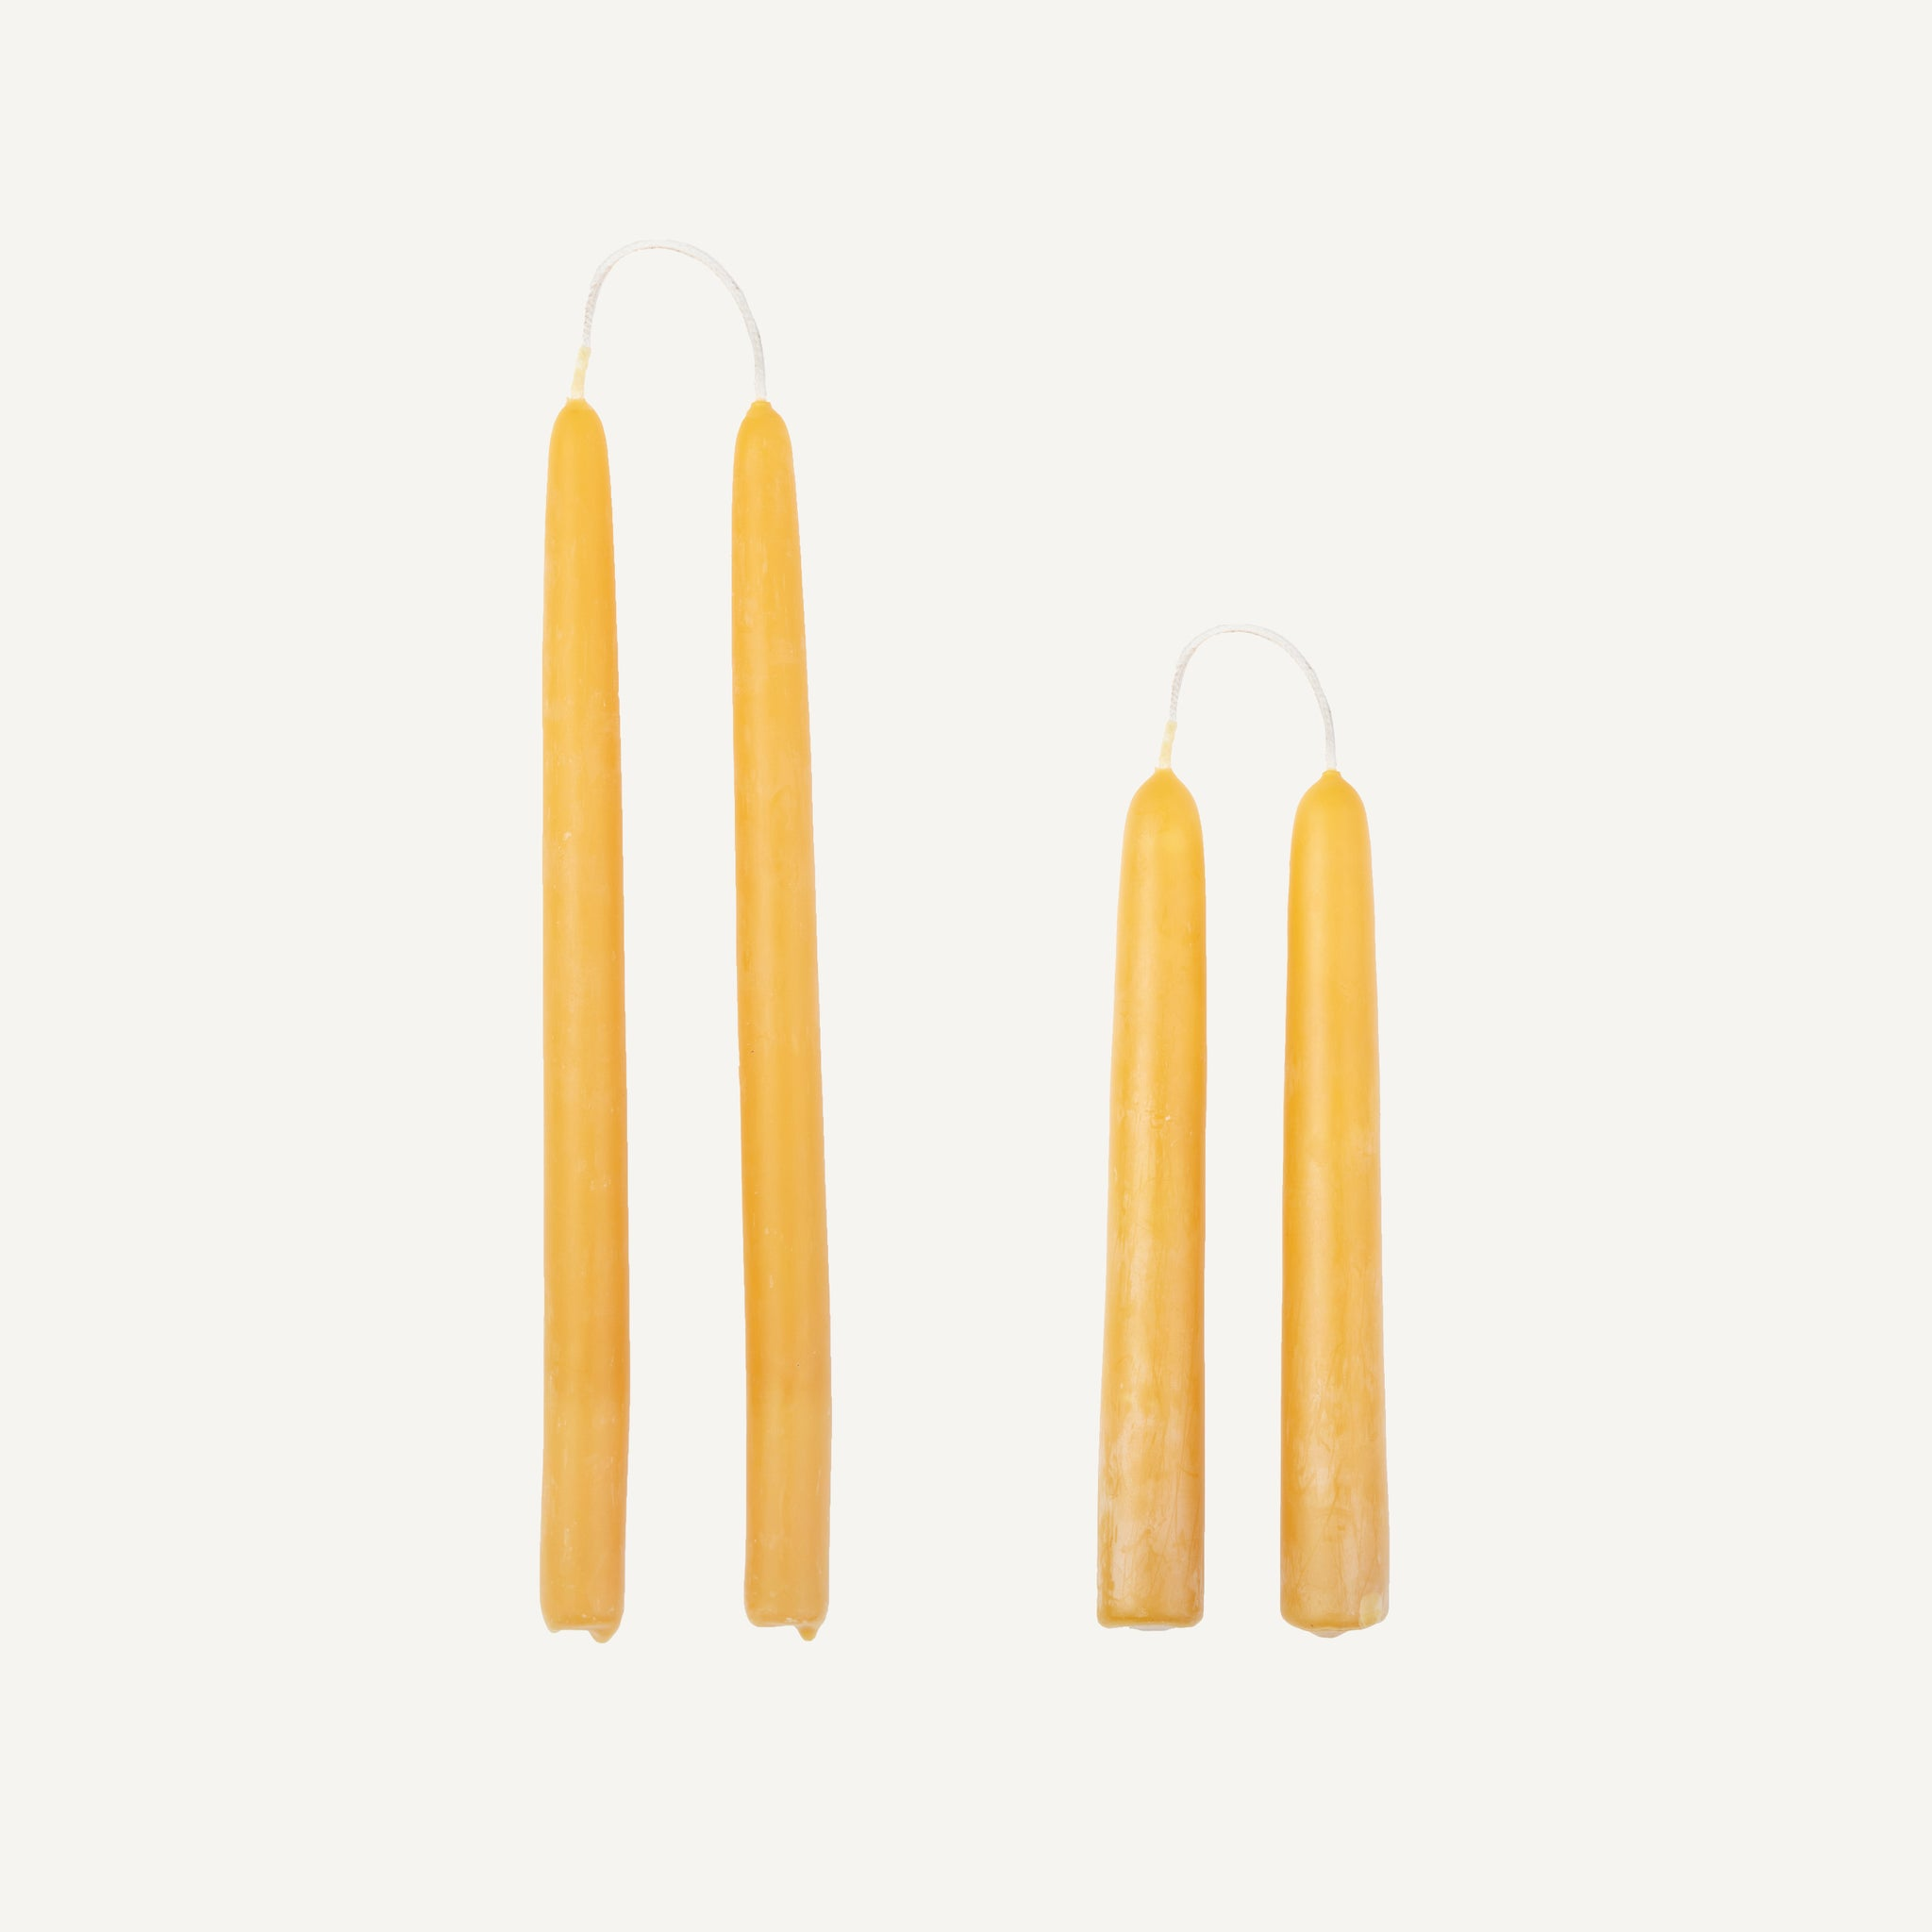 HANDMADE BEESWAX CANDLES, PAIR